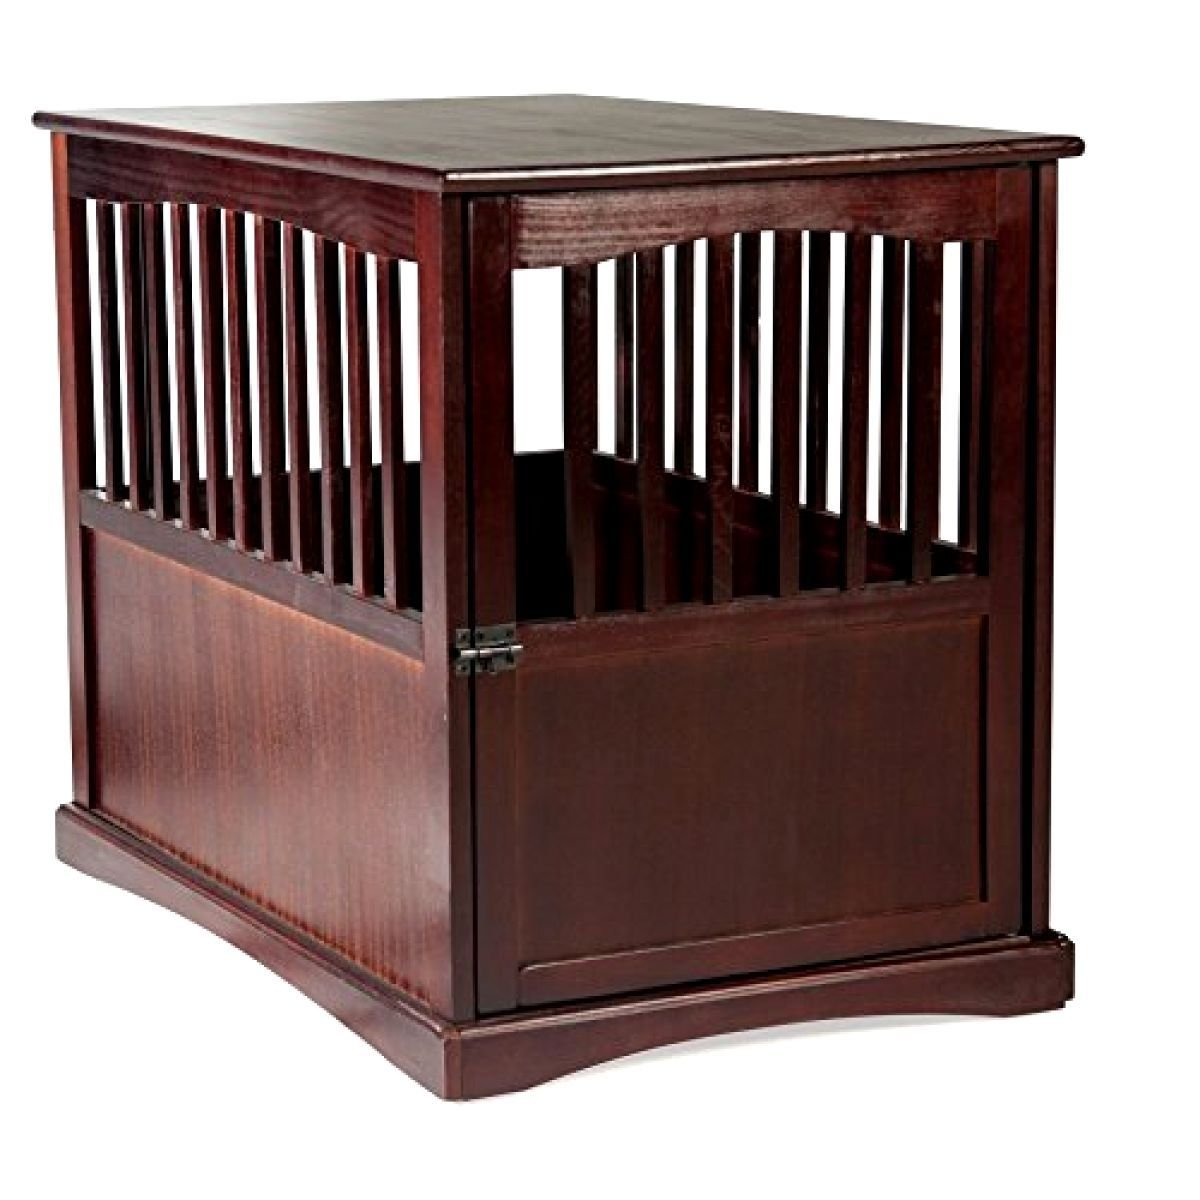 Polarbear's Shop NEW! Dog Kennel Wood Bed Large Crate Oversized Pet Cage Wooden Furniture End Table